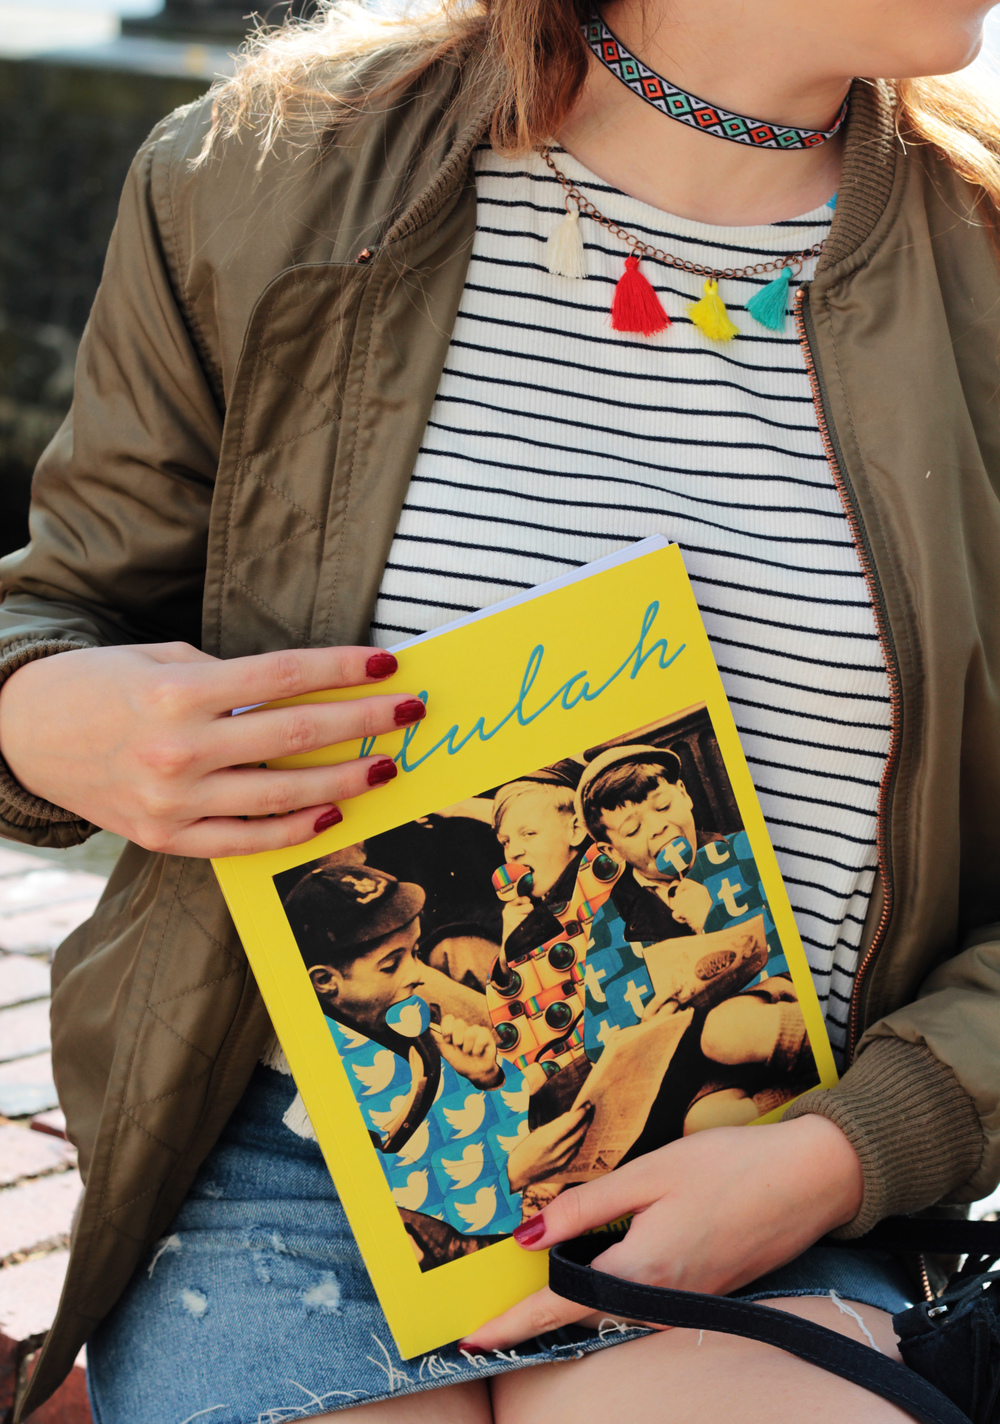 Tallulah Magazine Volume 02 is all about the artist's process and backstory. Discover how modern art has changed my life recently at www.MARINASAYS.com - a blog for women who love pretty things.